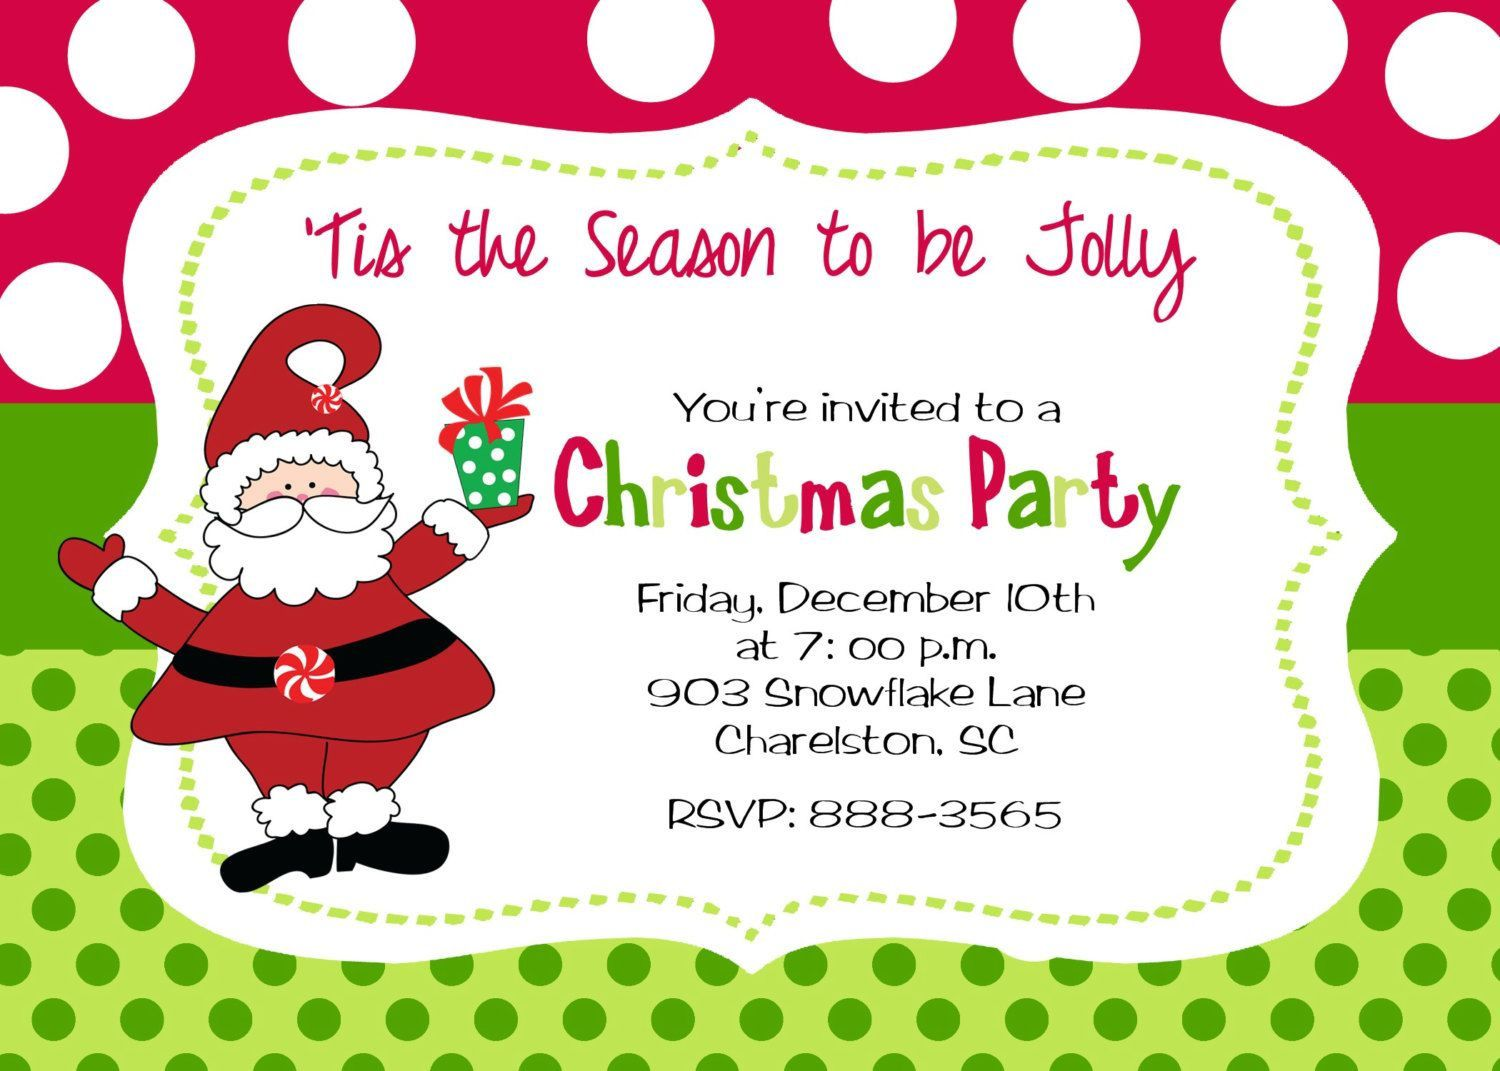 011 Unique Holiday Party Invite Template Word Picture  Cocktail Invitation Wording Sample Microsoft ChristmaFull